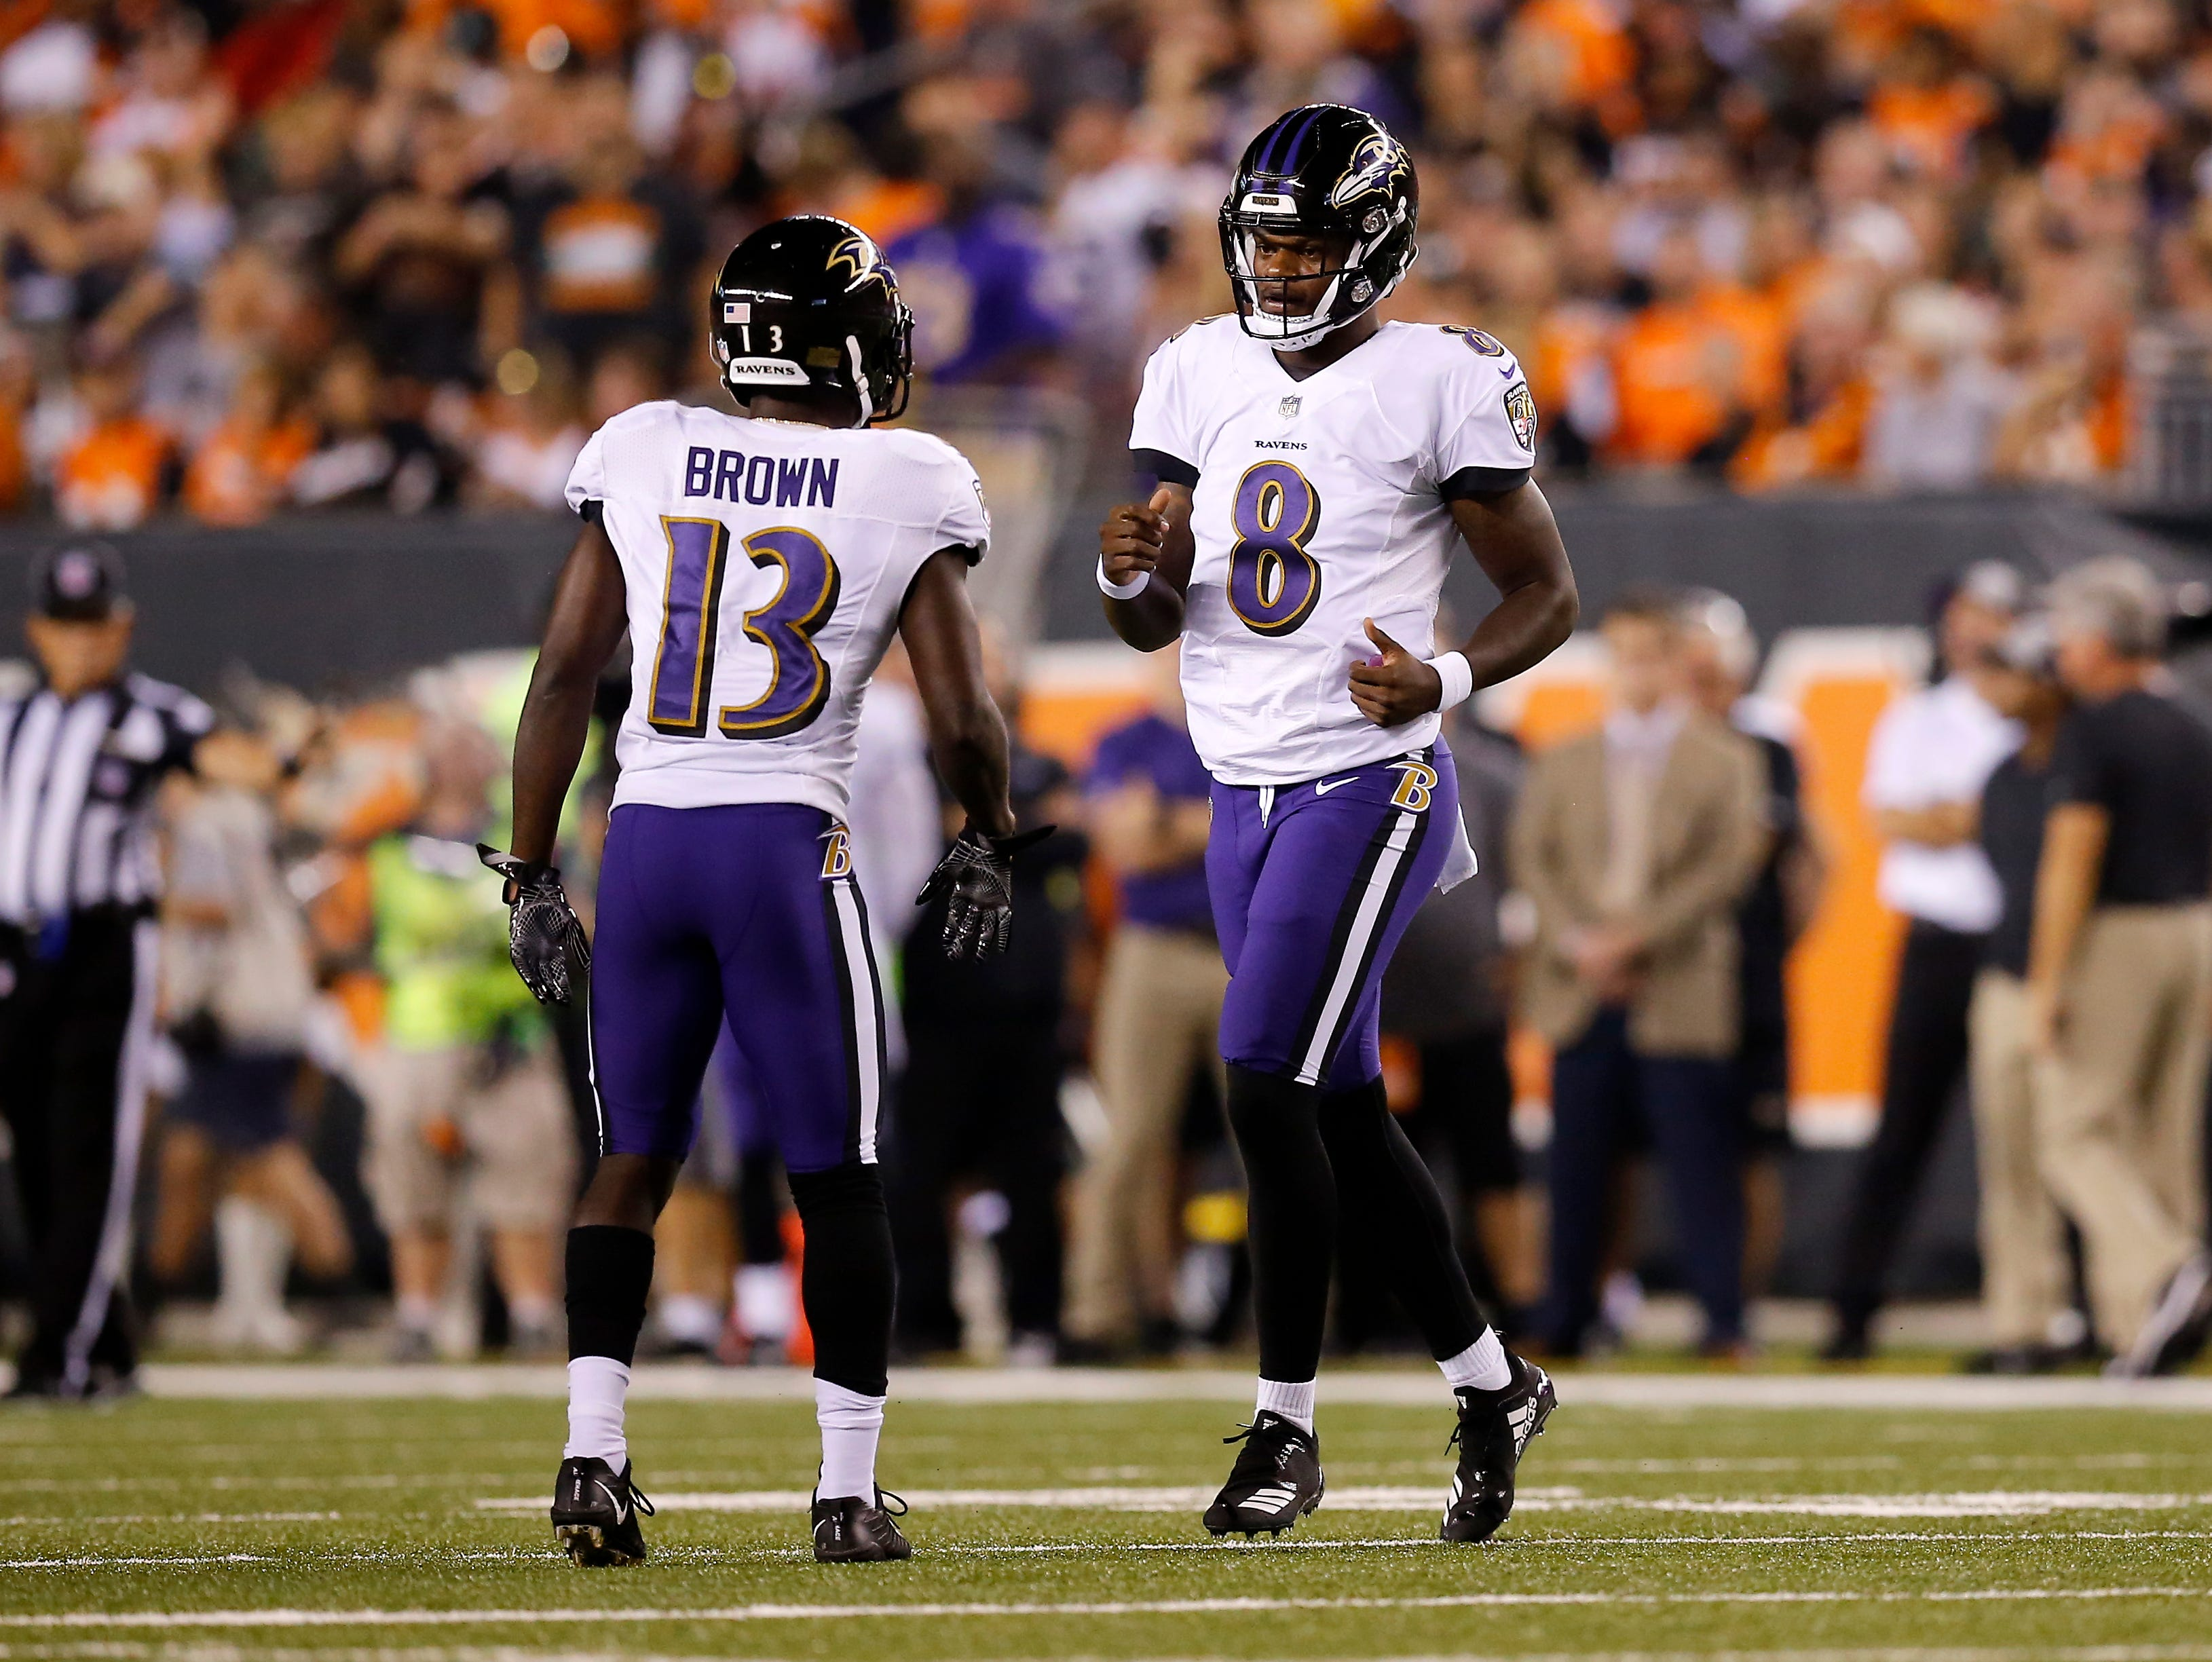 Baltimore Ravens quarterback Lamar Jackson (8) comes in for a play in the second quarter of the NFL Week 2 game between the Cincinnati Bengals and the Baltimore Ravens at Paul Brown Stadium in downtown Cincinnati on Thursday, Sept. 13, 2018. The Bengals led 28-14 at halftime.